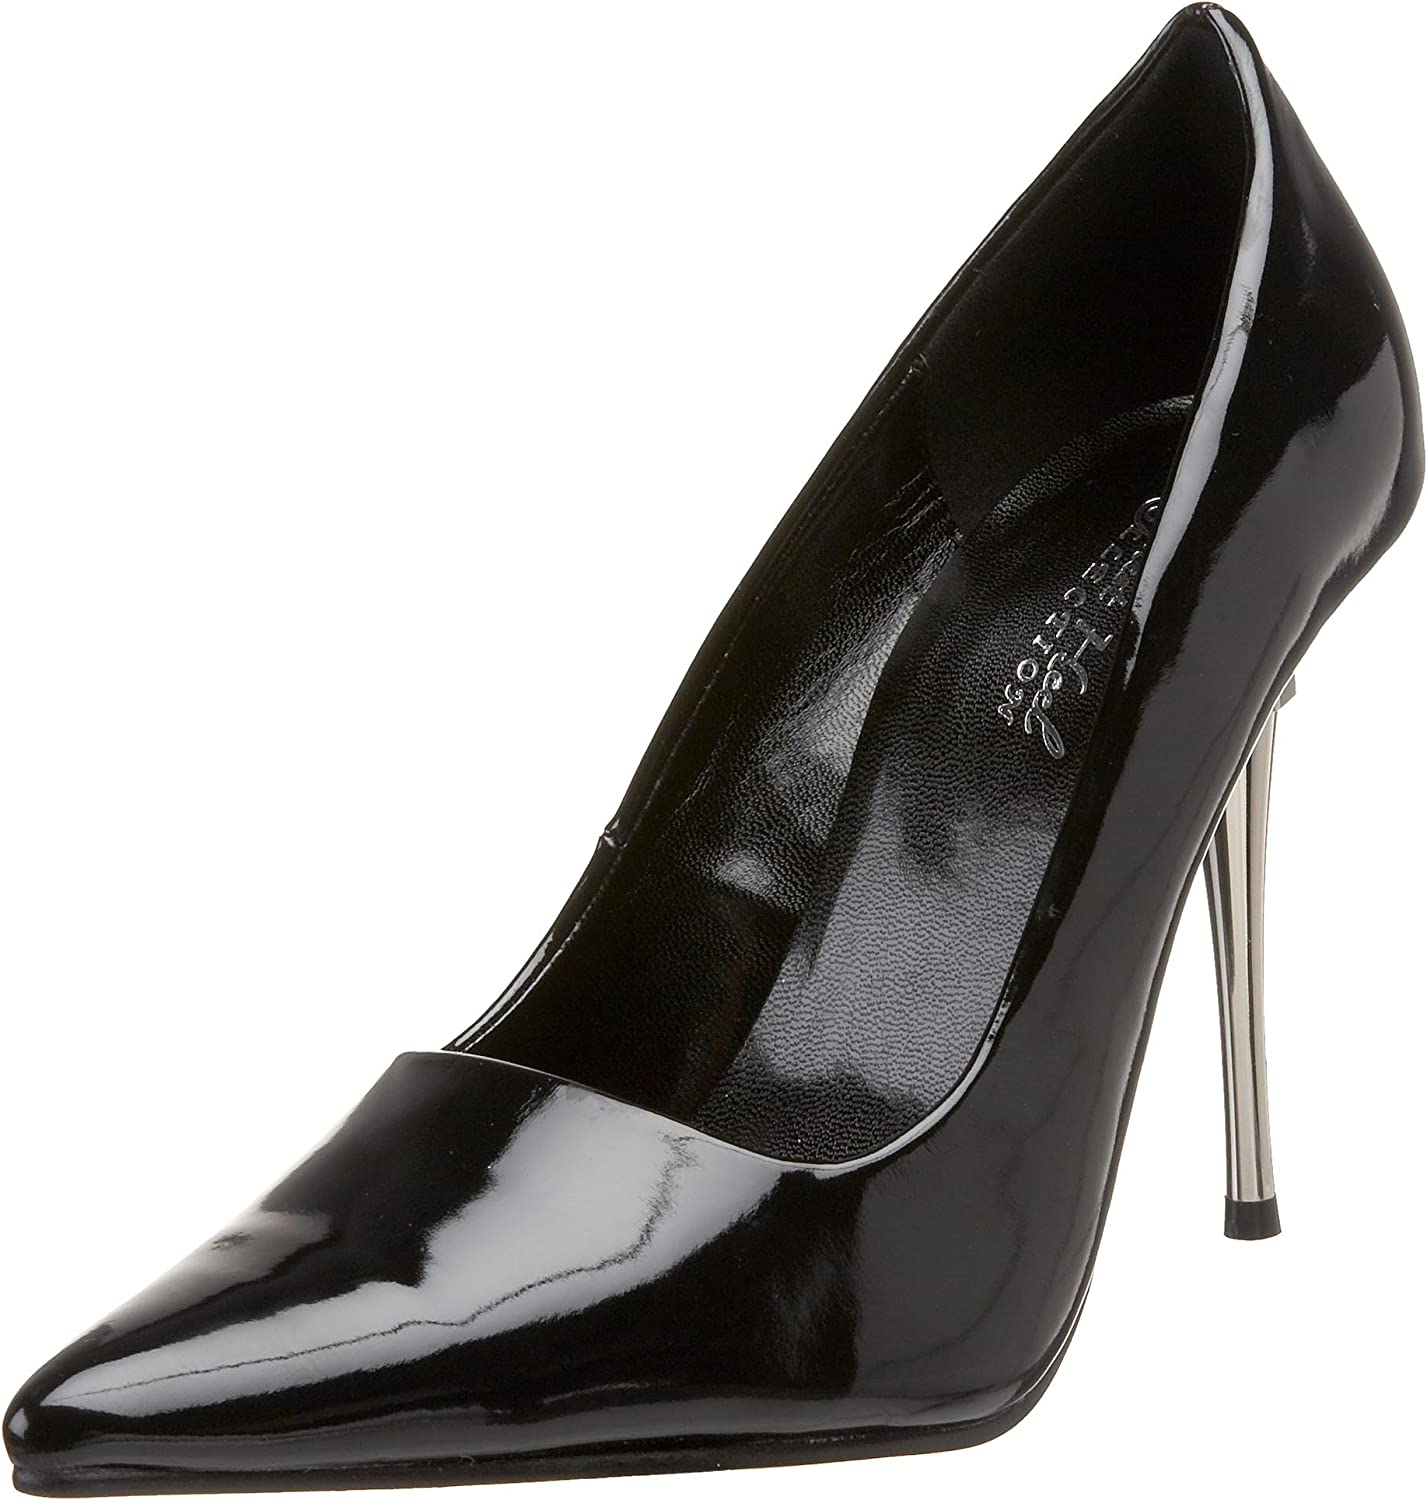 Highest Heel The Women's Glitzee Pump